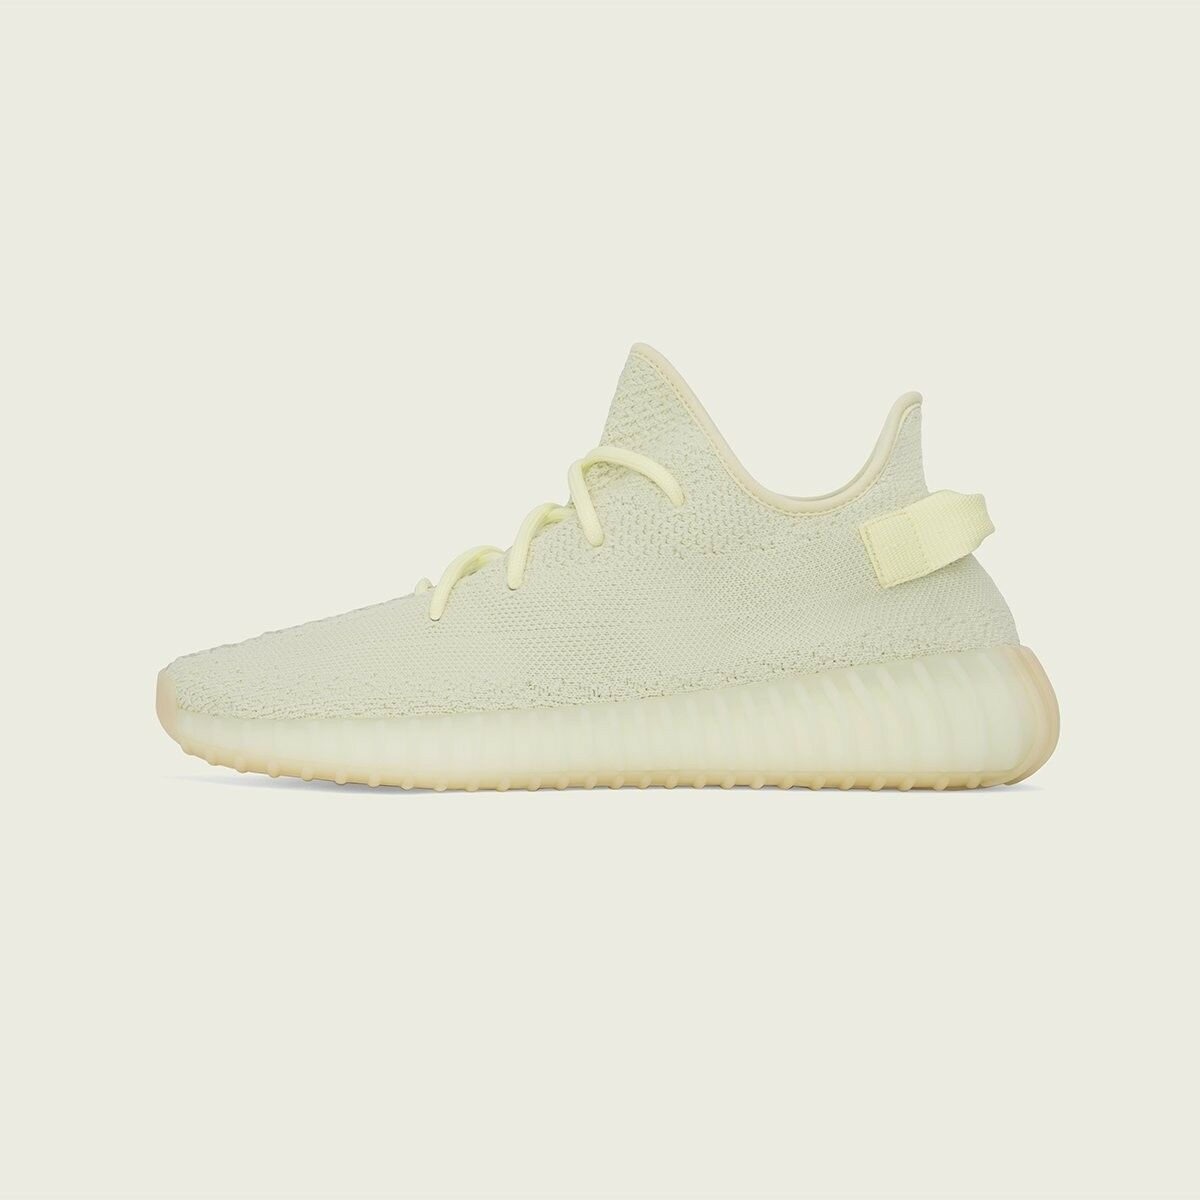 Adidas Yeezy Boost 350 V2 Butter US Men Size 13 F36980 100% AUTHENTIC